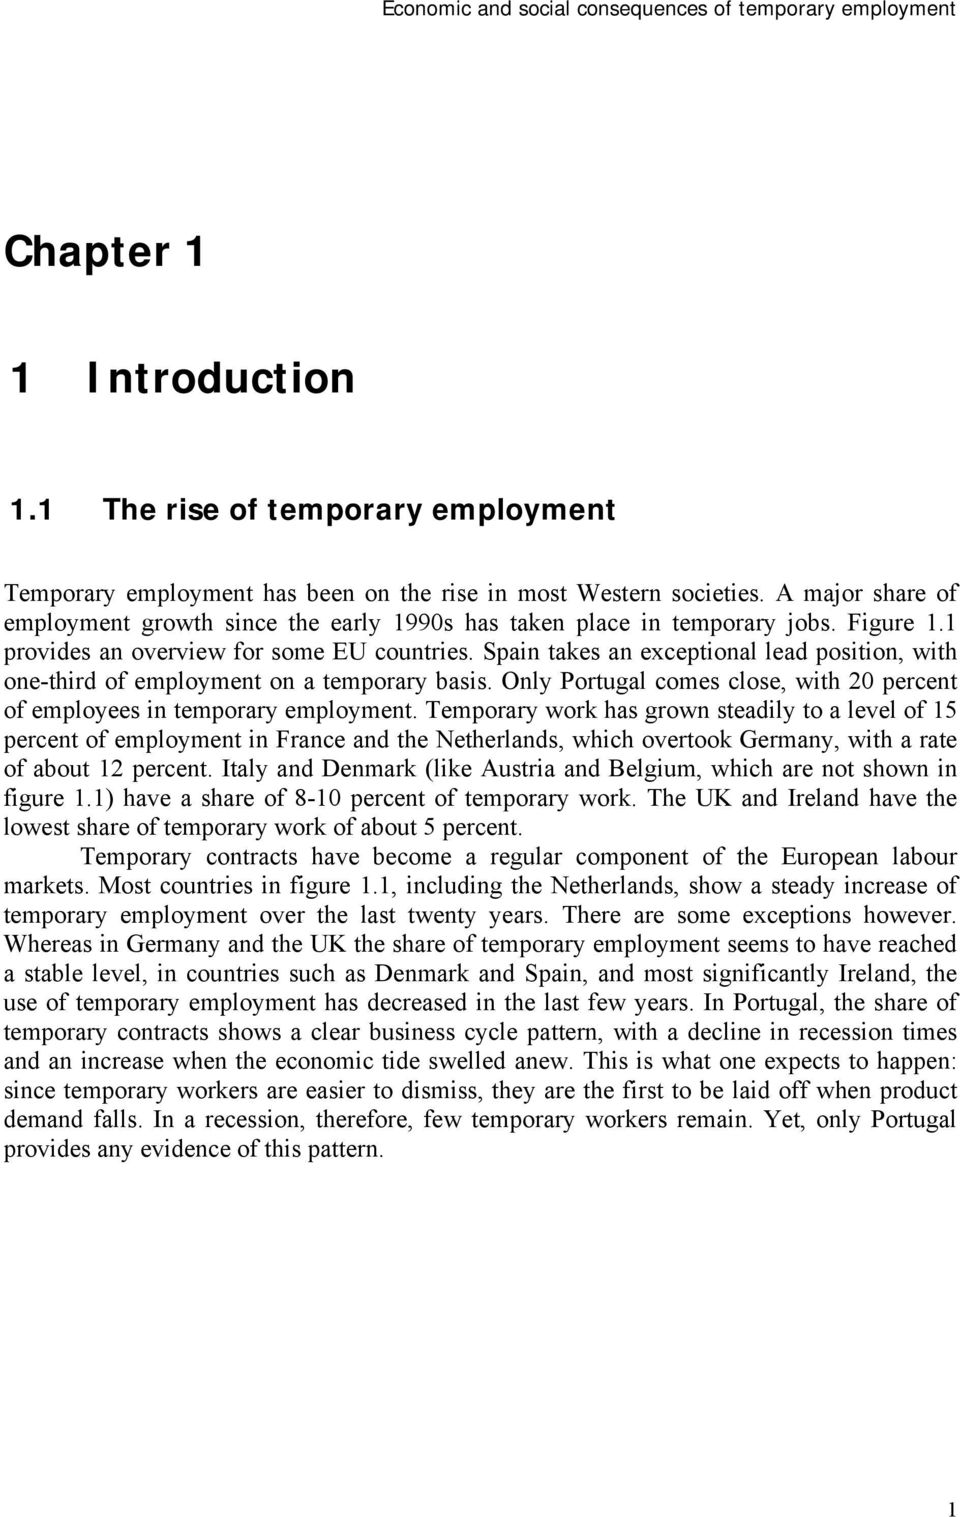 Spain takes an exceptional lead position, with one-third of employment on a temporary basis. Only Portugal comes close, with 20 percent of employees in temporary employment.